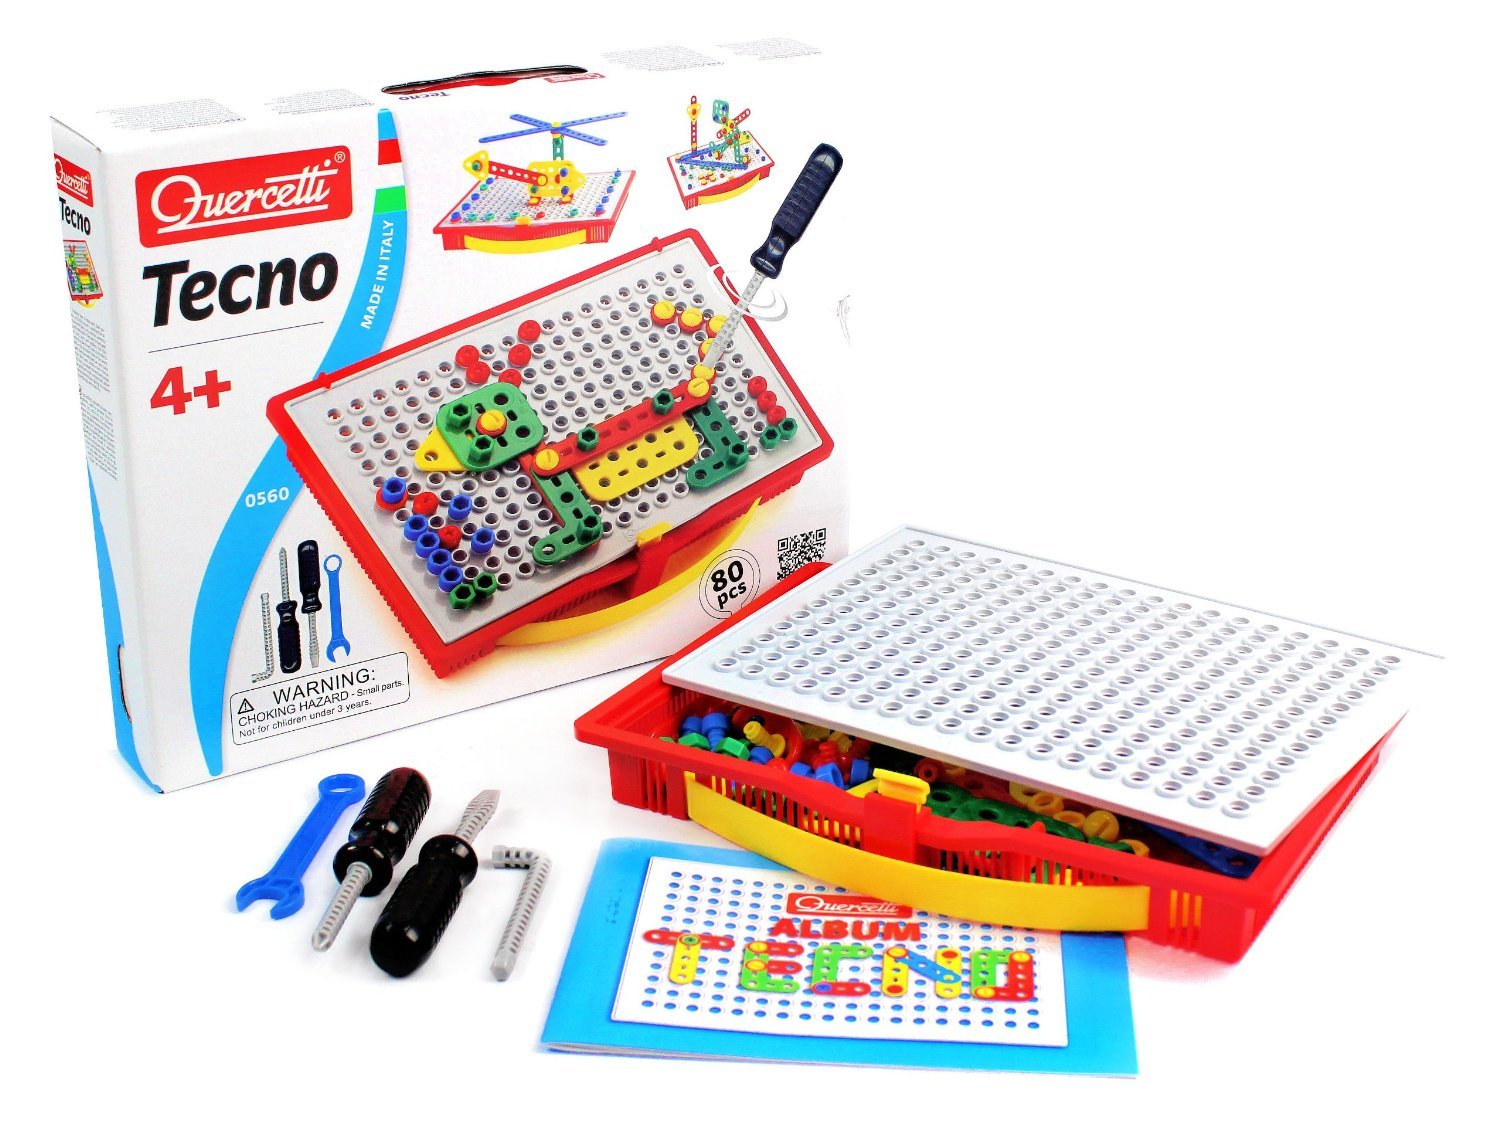 Toy Building Set For Boys : Best gifts for year old boys in itsy bitsy fun